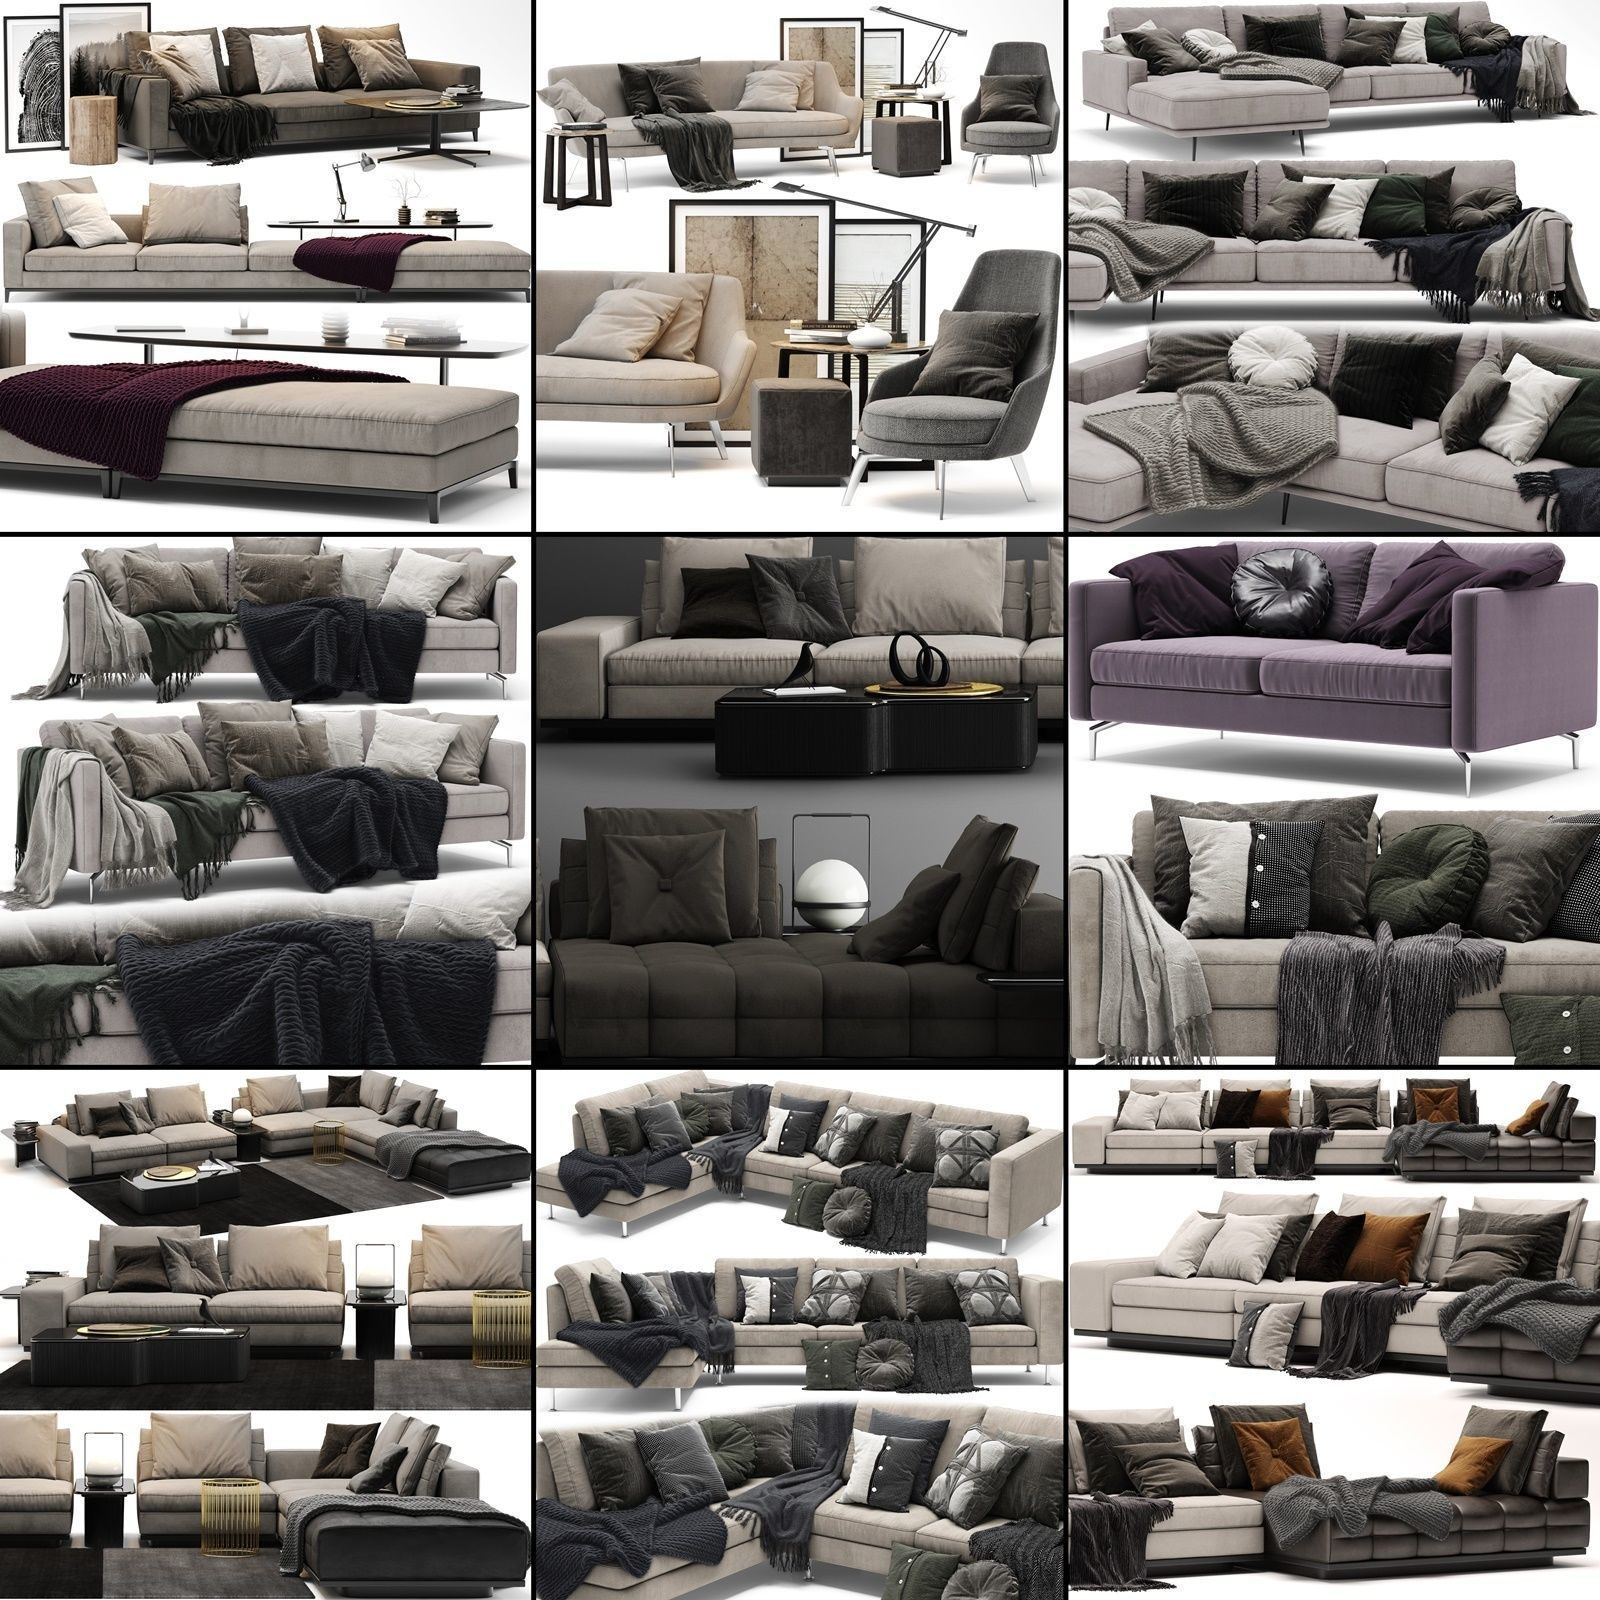 Sofa Collection 02 - 10 Items